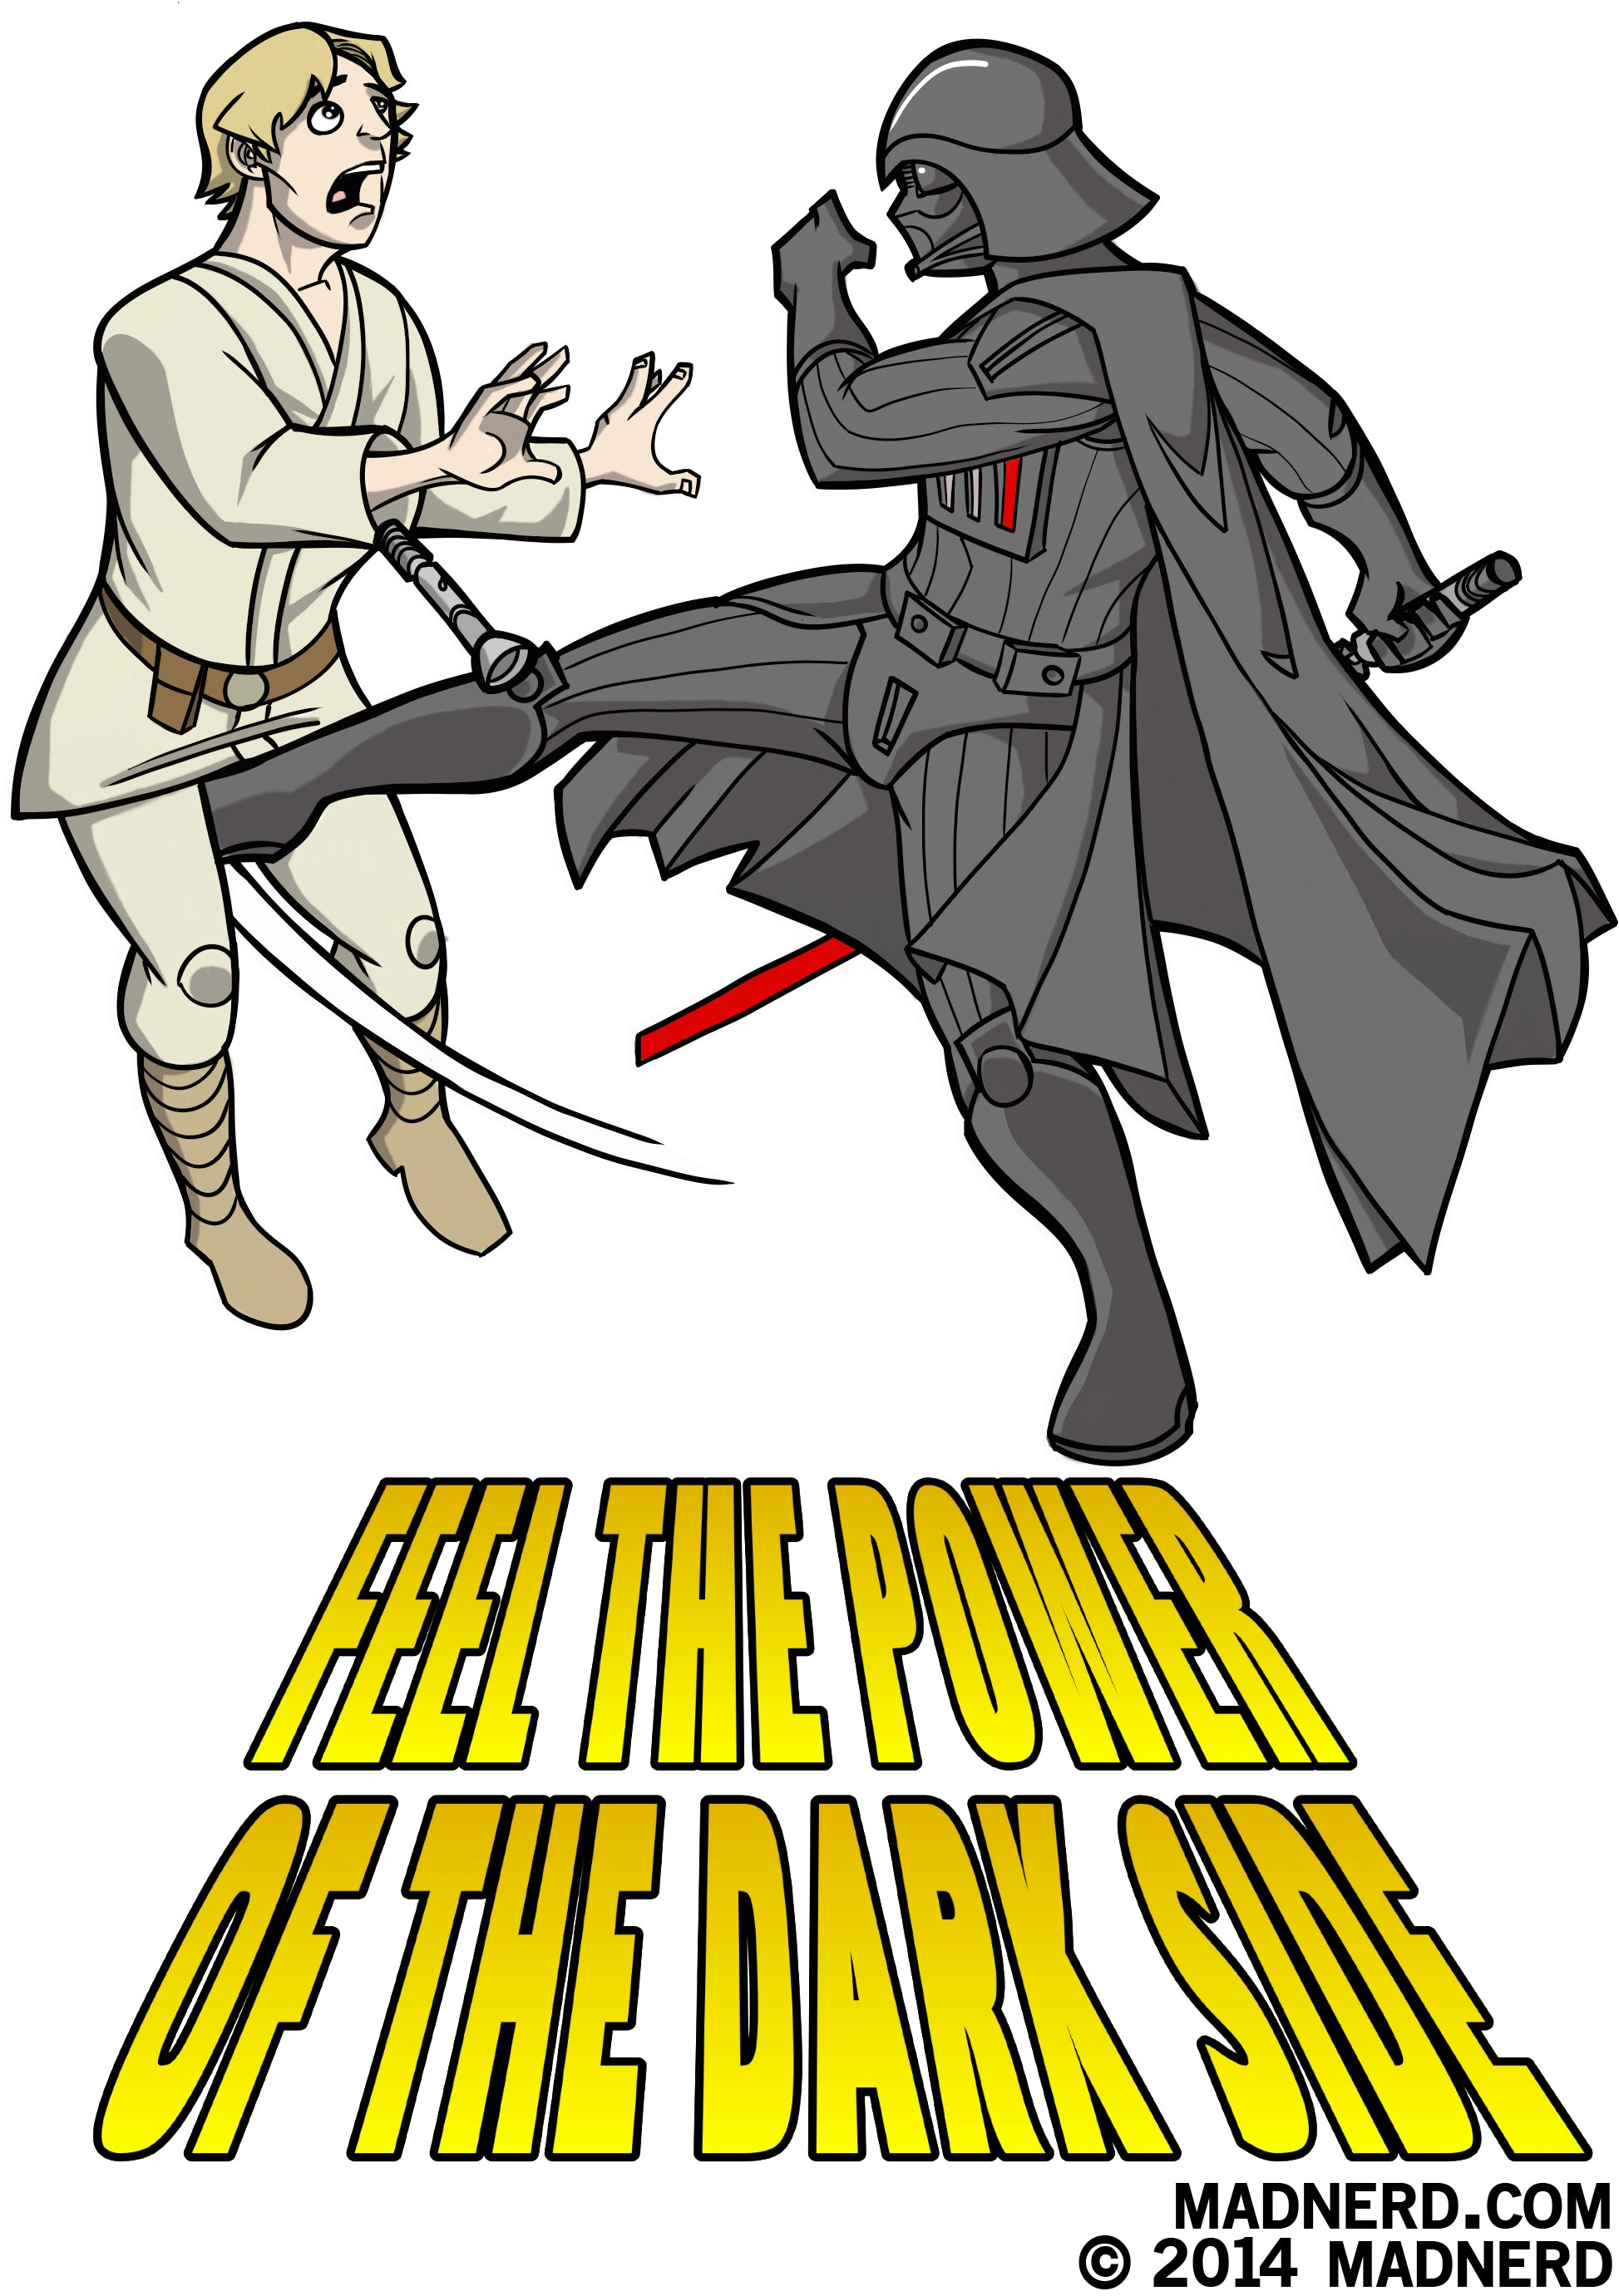 Feel the power of the dark side -Darth Vader and Luke